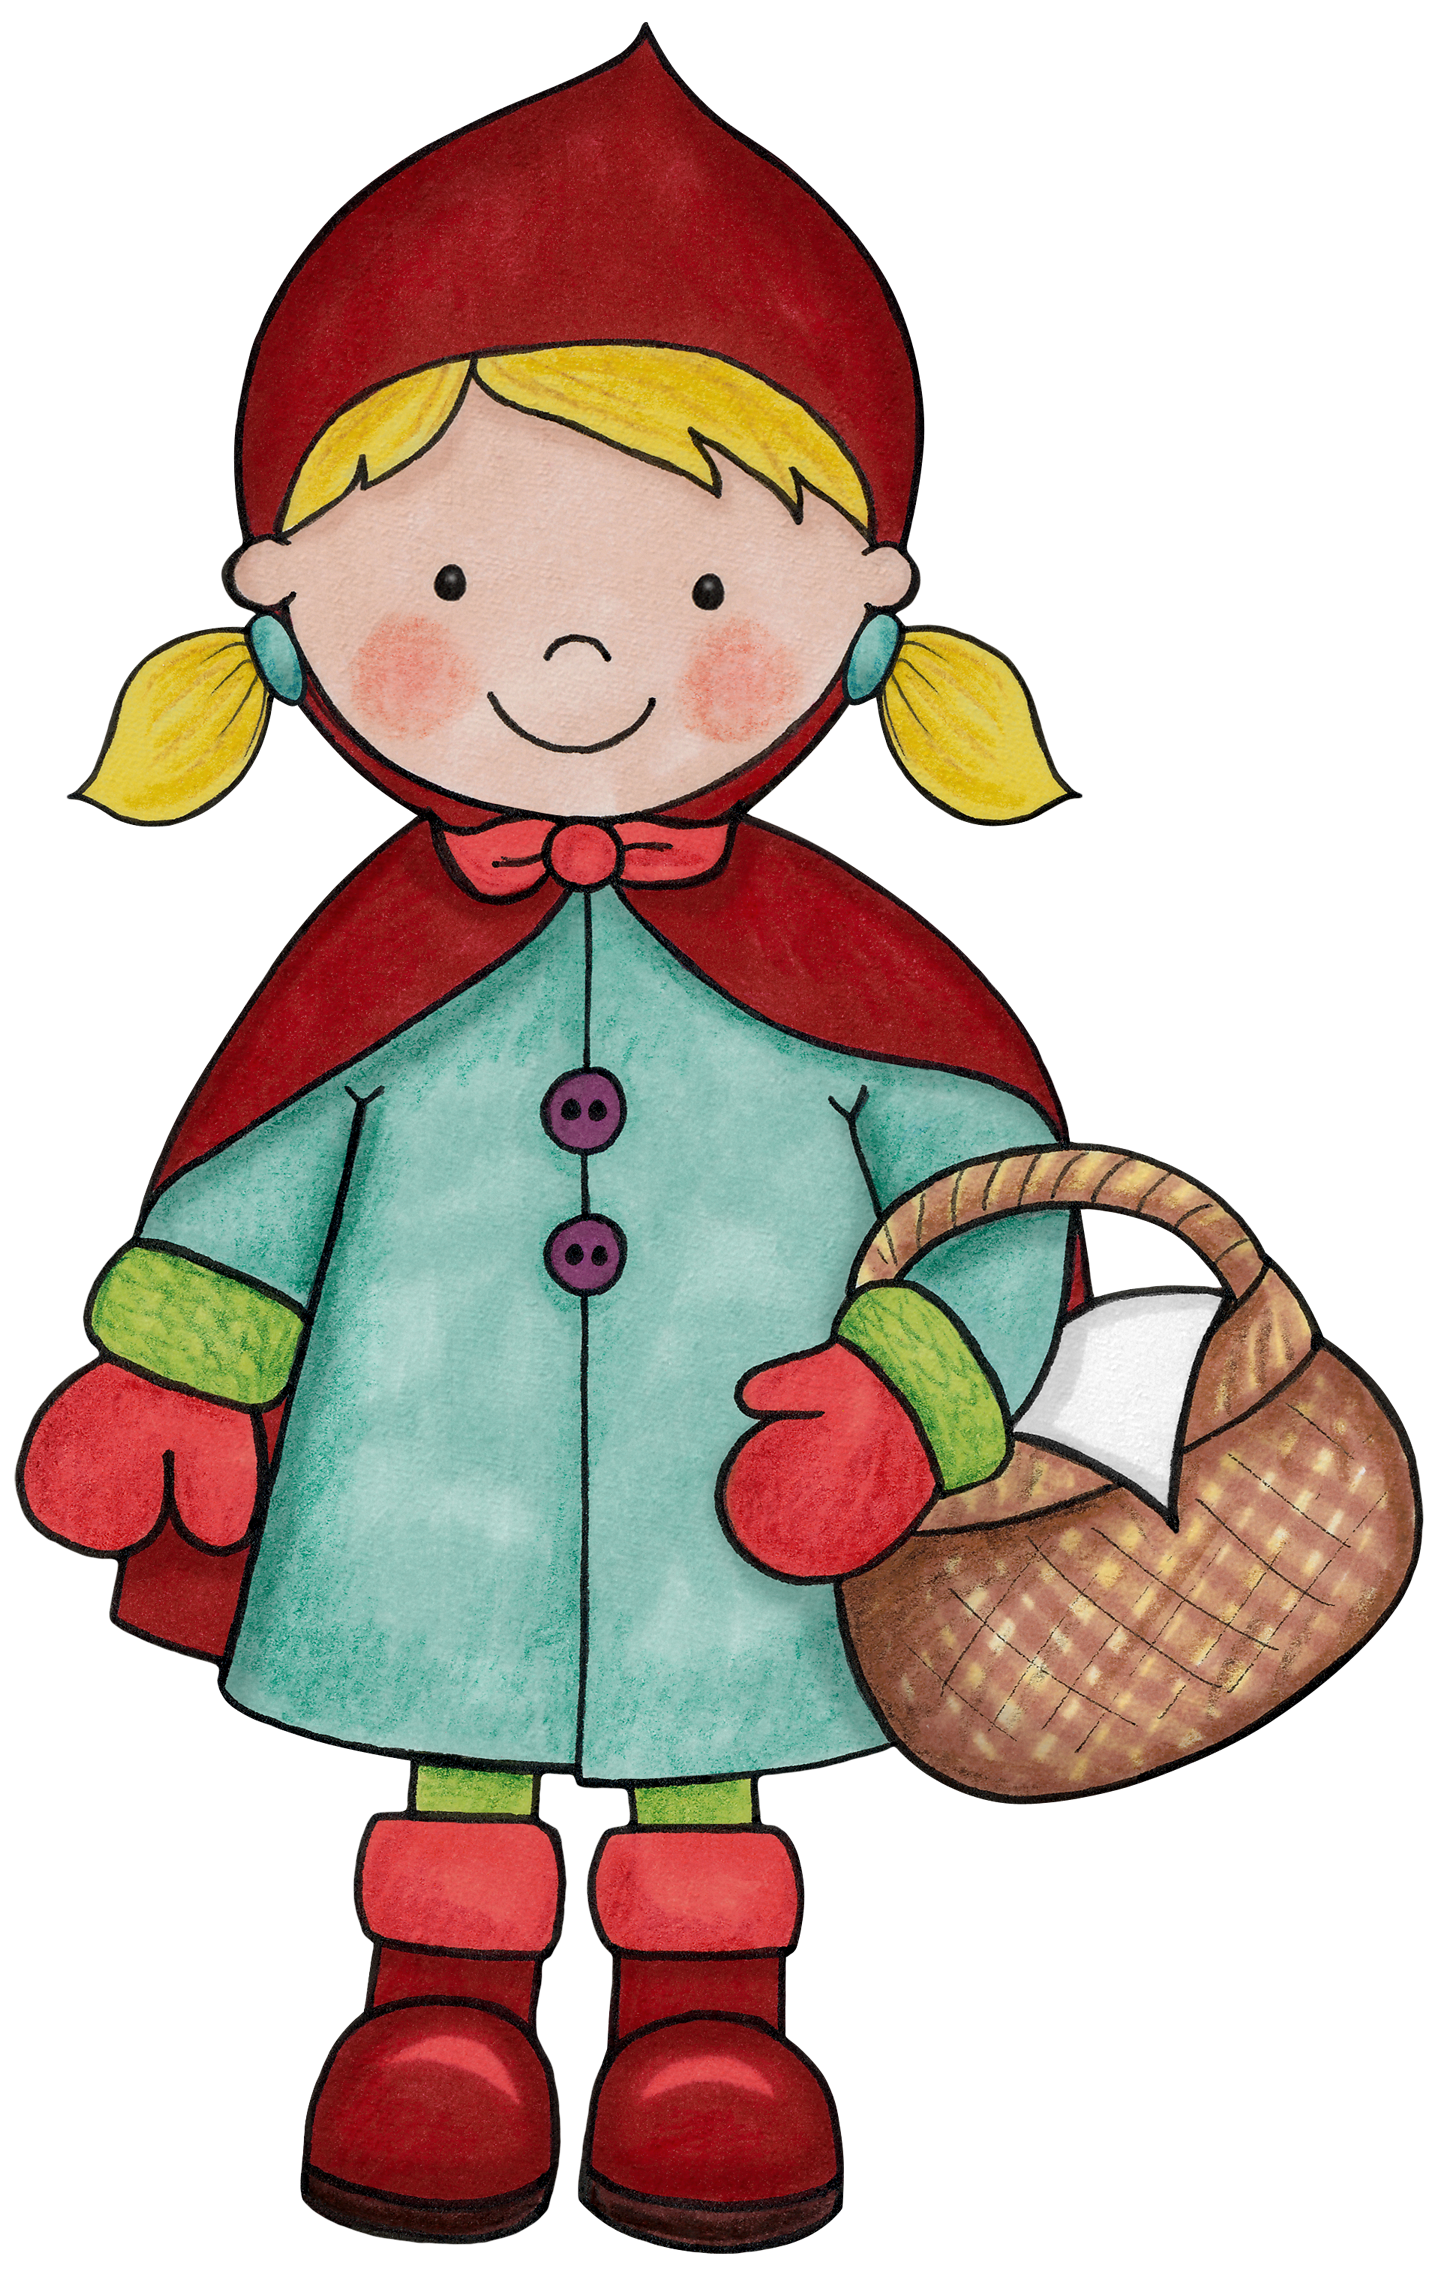 Little Red Riding Hood - Enchanted Forest / Woodlands Party | CONTE ...